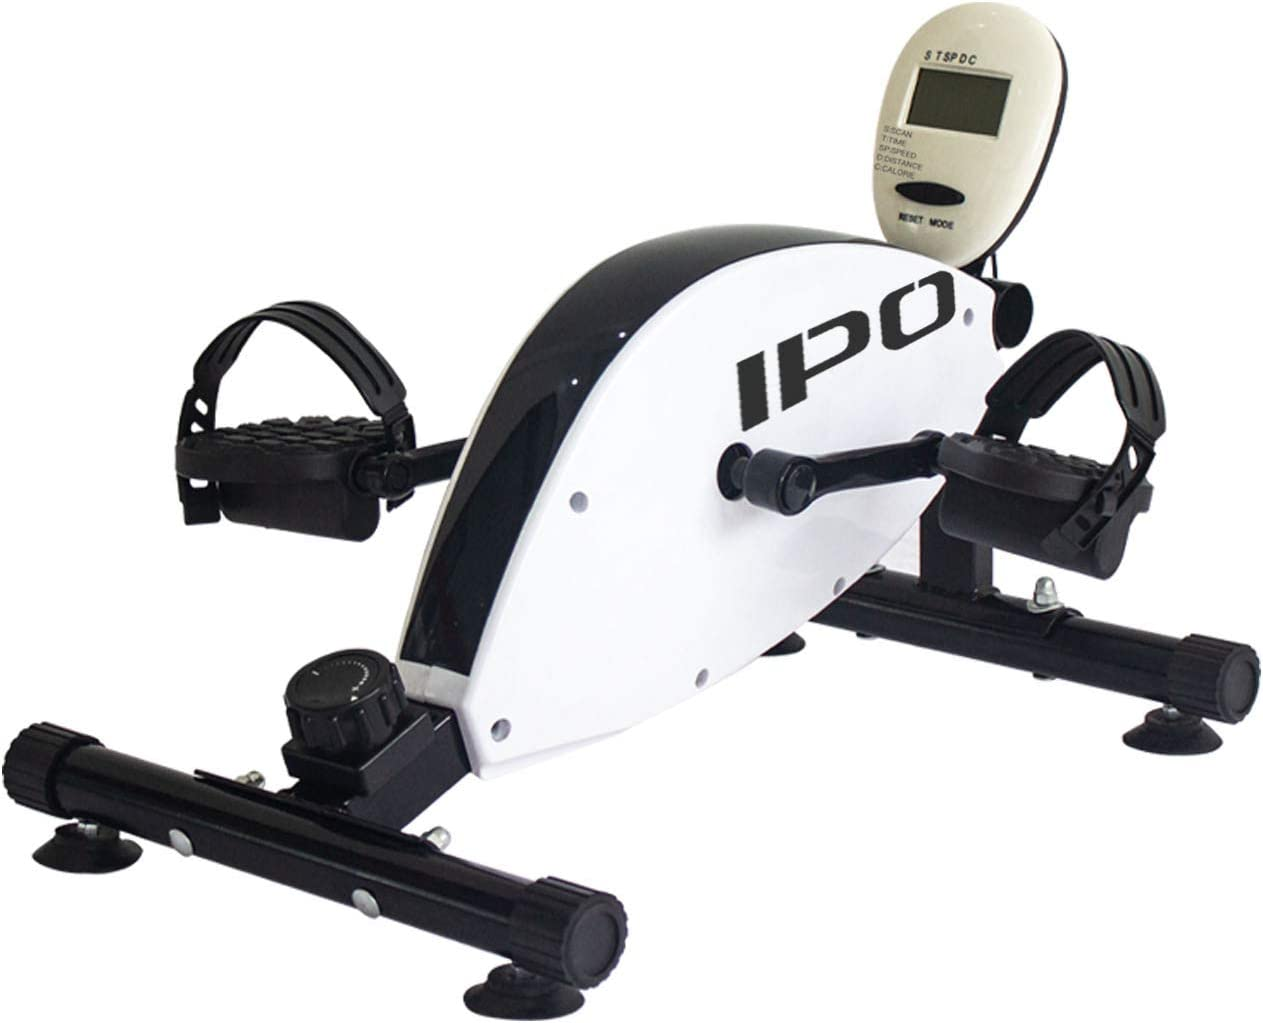 IPO Under Desk Exercise Bike and Pedal Exerciser